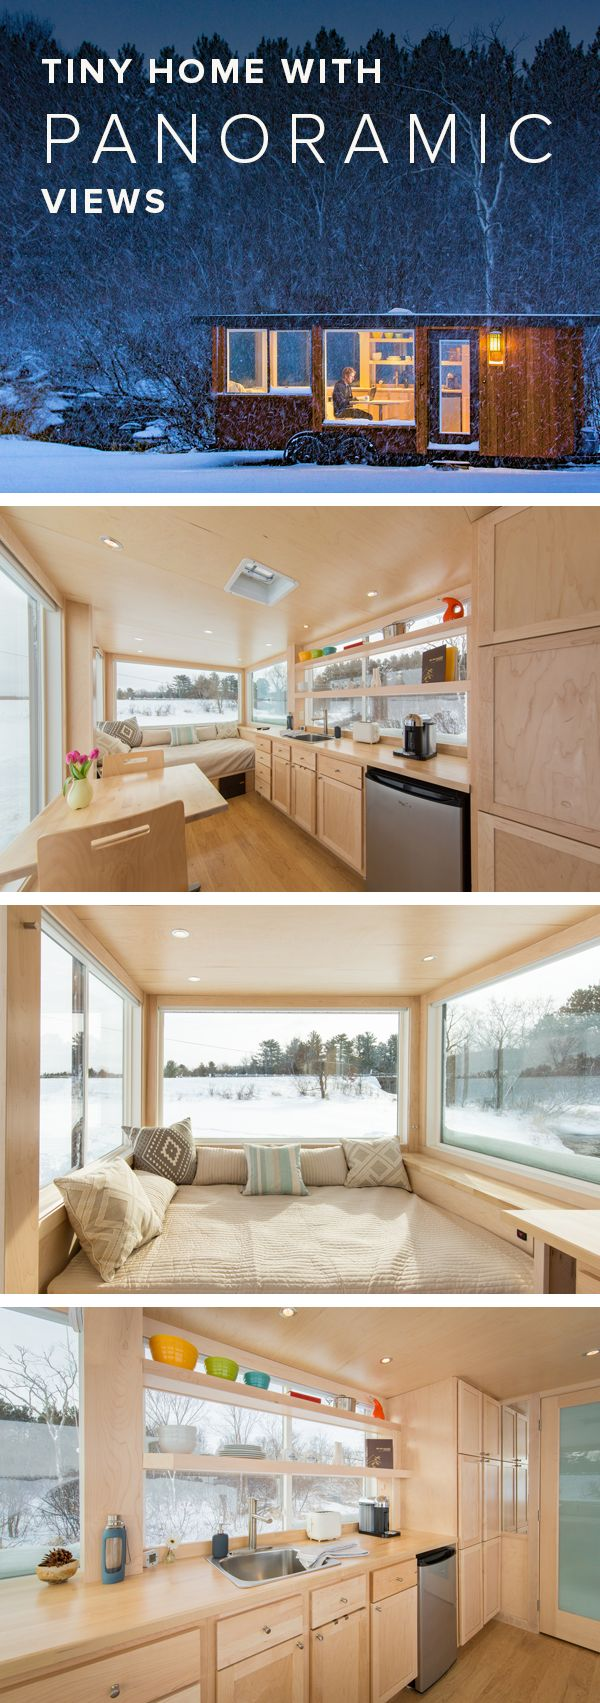 184 best Simplify w/ Small Spaces images on Pinterest | Tiny house Tiny House Interior Design Windows on great room french interior design, architect interior design, tiny houses and cottages, empty house interior design, young house interior design, kitchen interior design, sustainability interior design, wall ideas interior design, tiny houses on wheels, fishing interior design, bathroom interior design, family interior design, medium house interior design, prefab interior design, i am home interior design, tiny houses taos, tiny cottage interiors, small home interior design, bedroom interior design, outlook interior design,